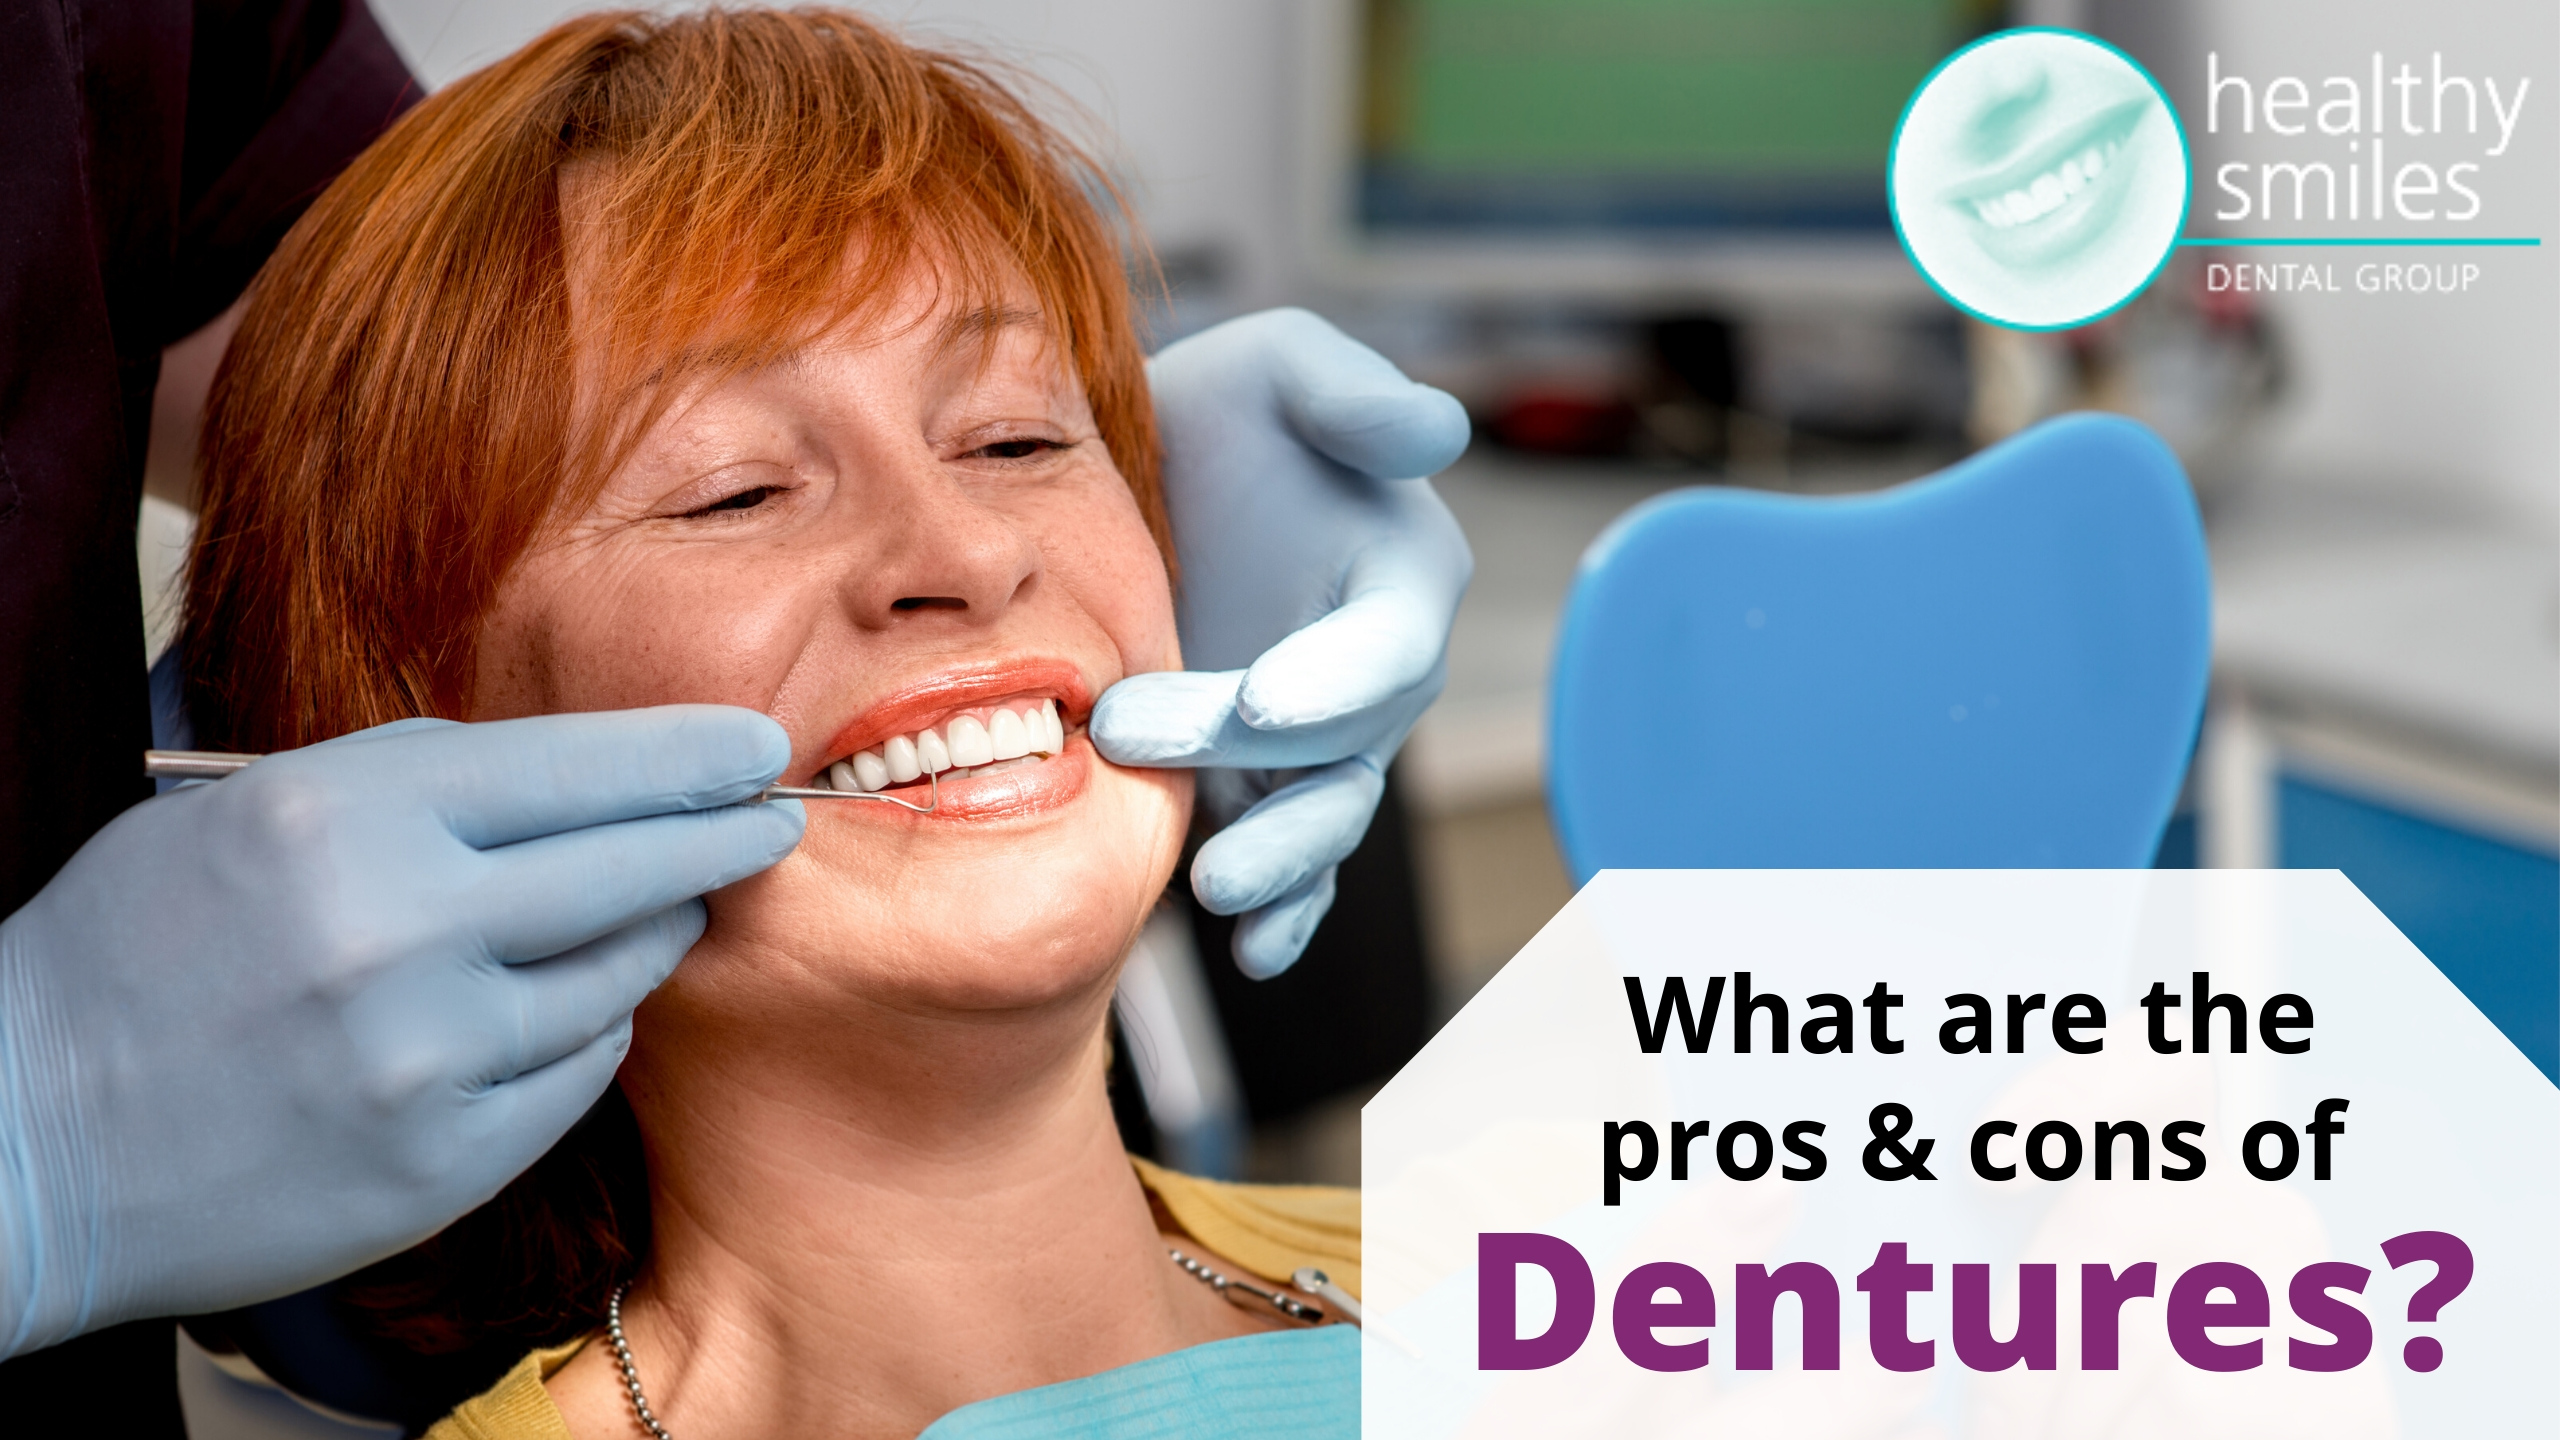 Pros and Cons of Dentures